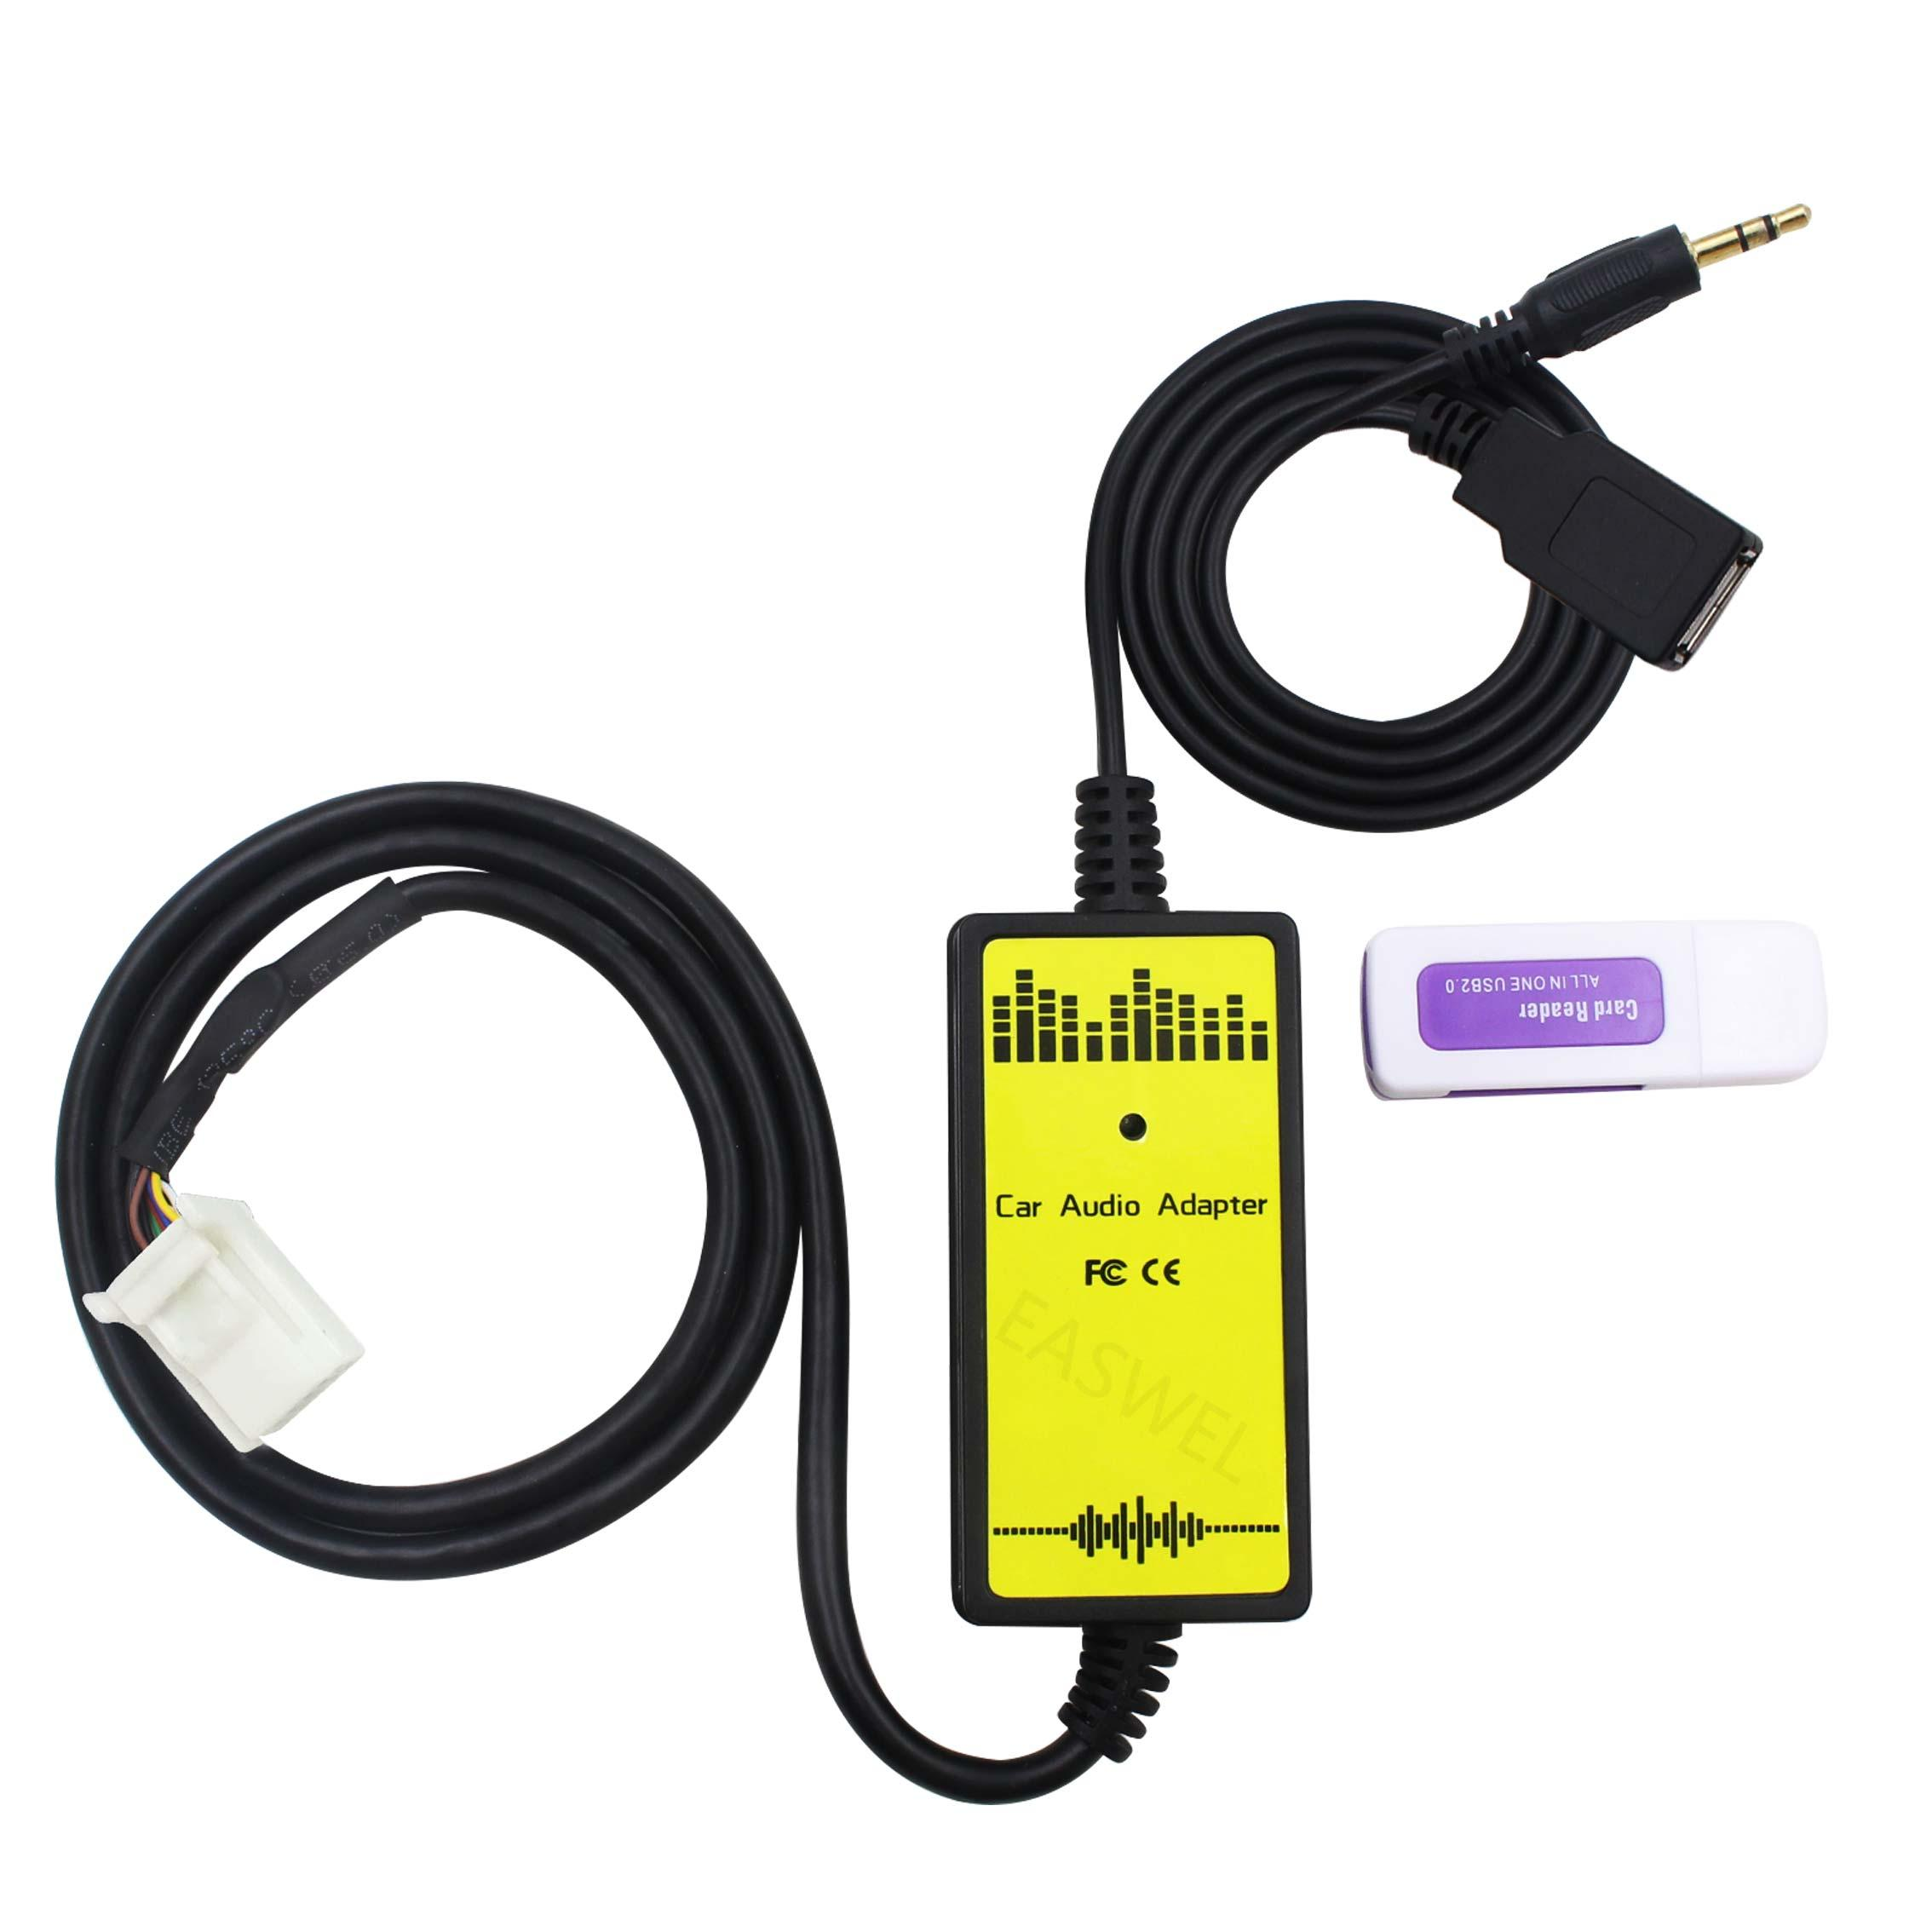 6+6Pin Car Audio CD Adapter Changer MP3 AUX USB Data Cable For Toyota Camry